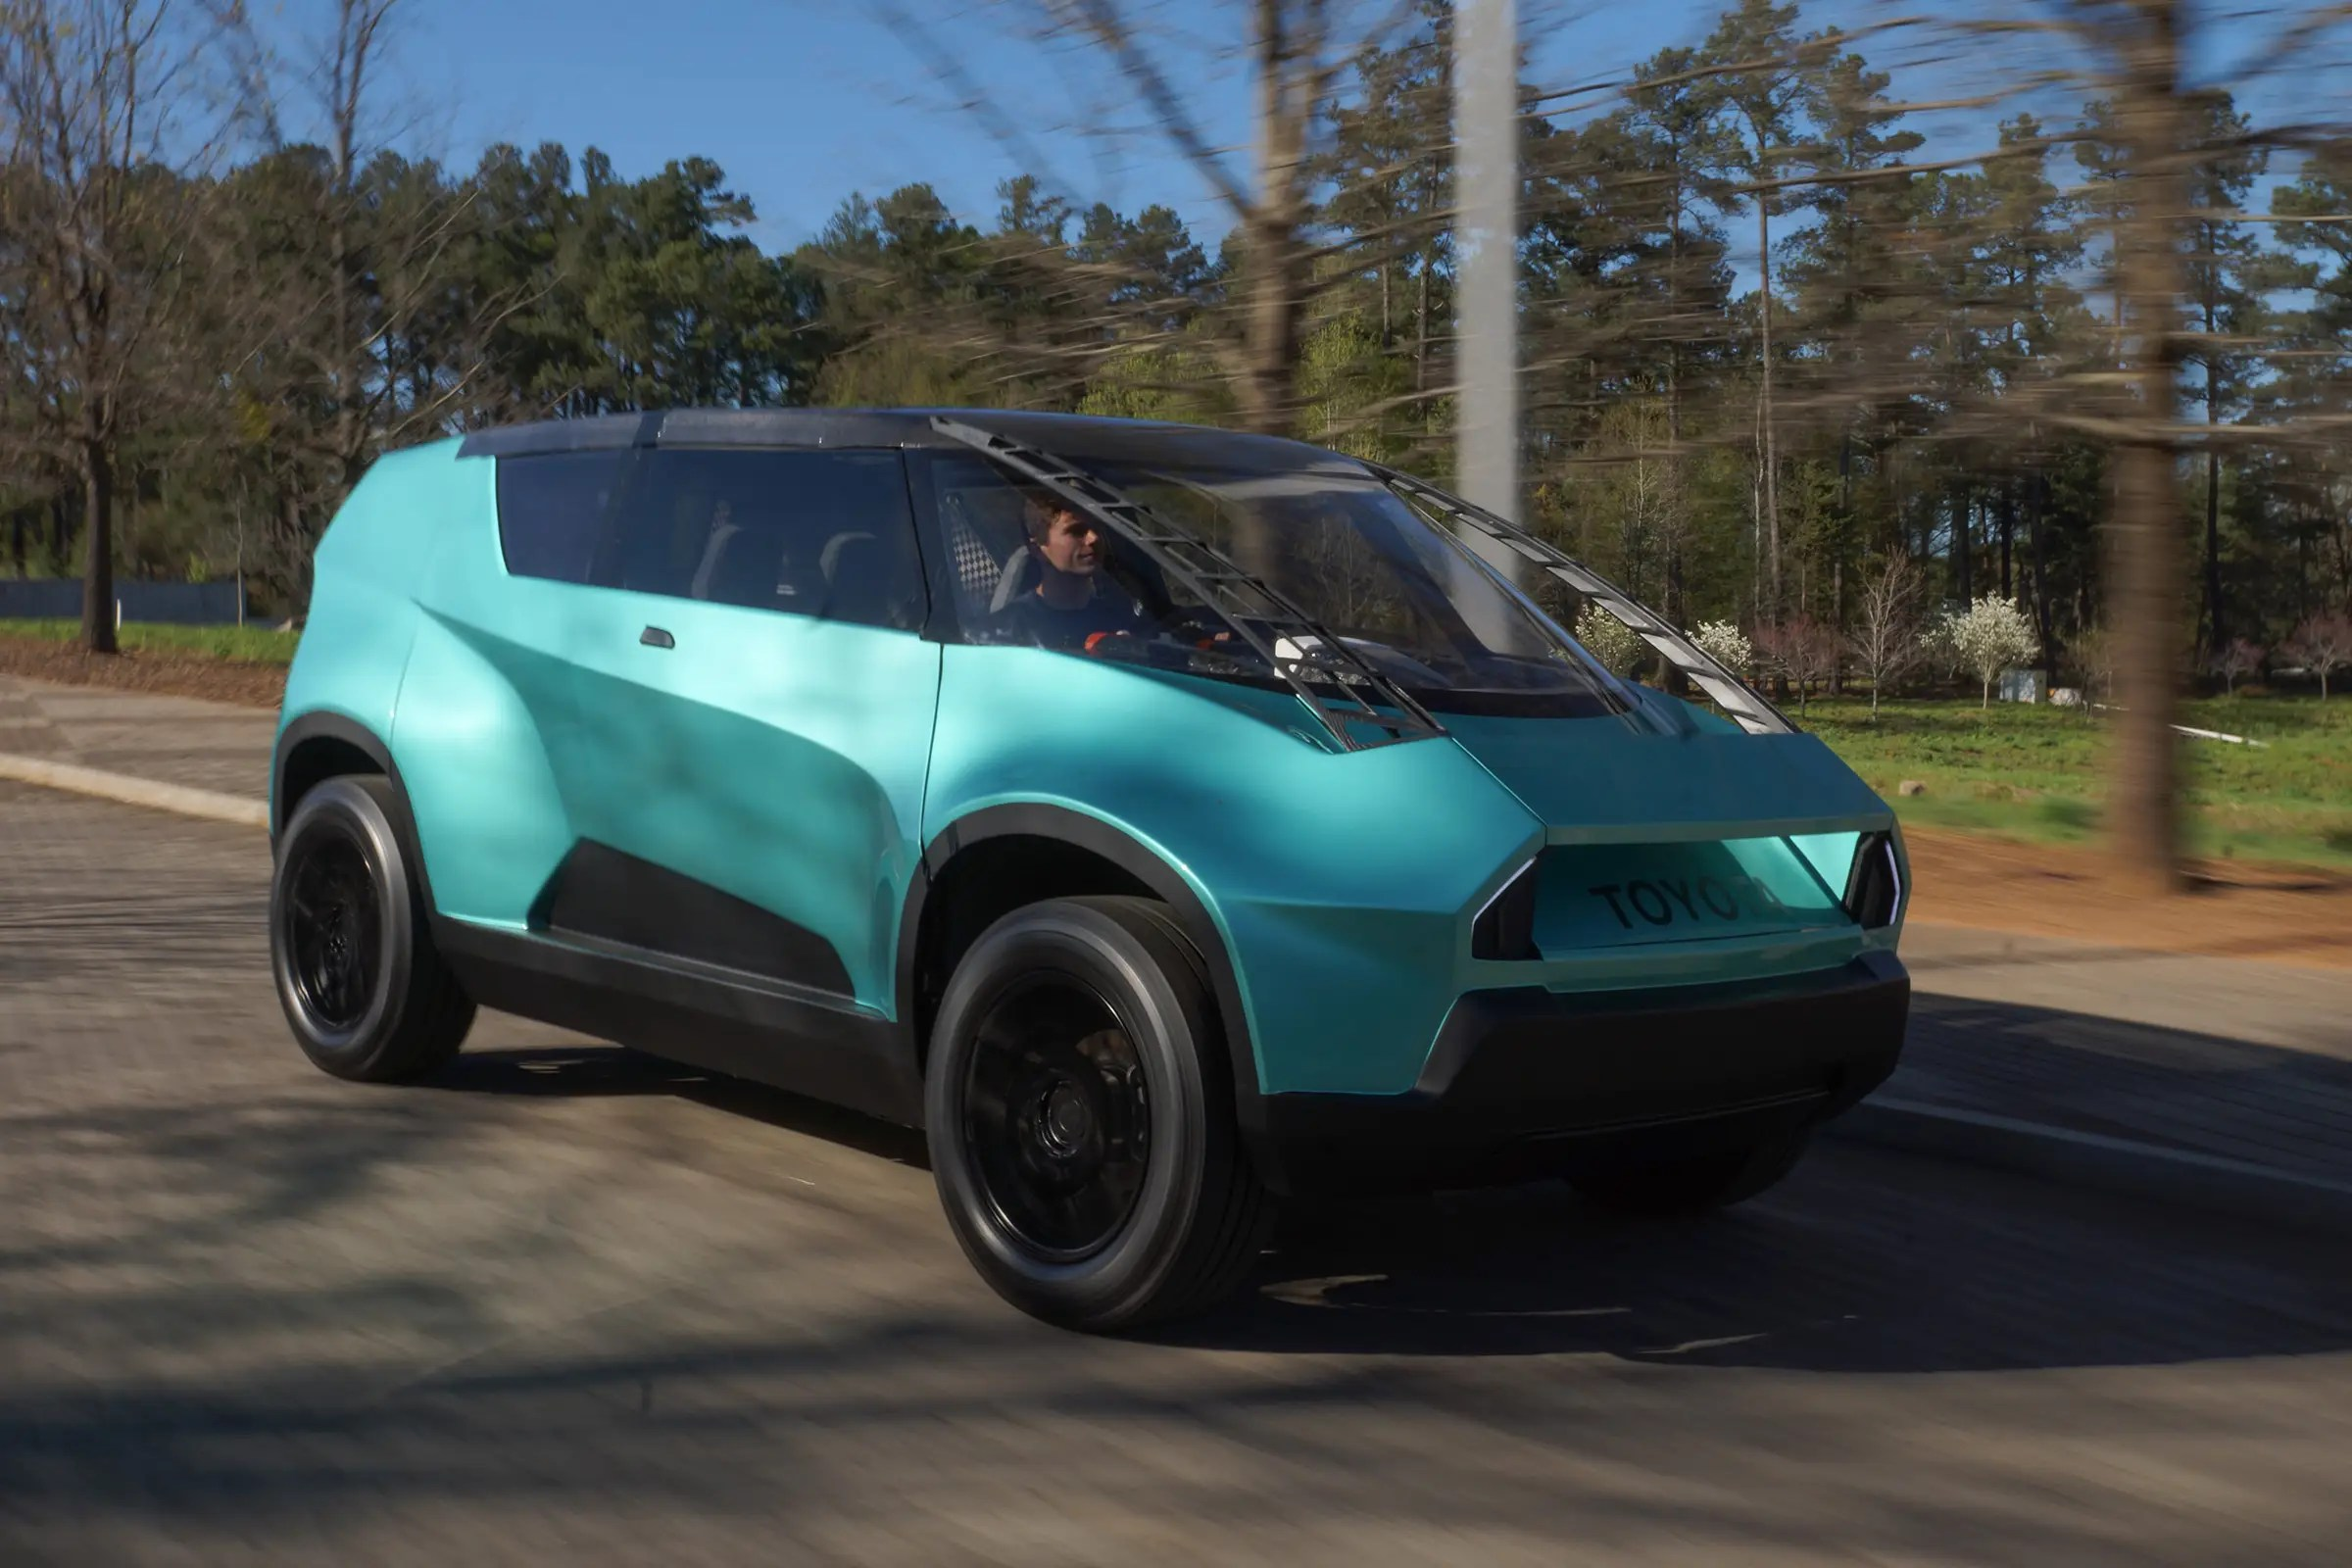 Toyota unveiled a strange looking concept car dubbed the ubox to appeal to generation z in april